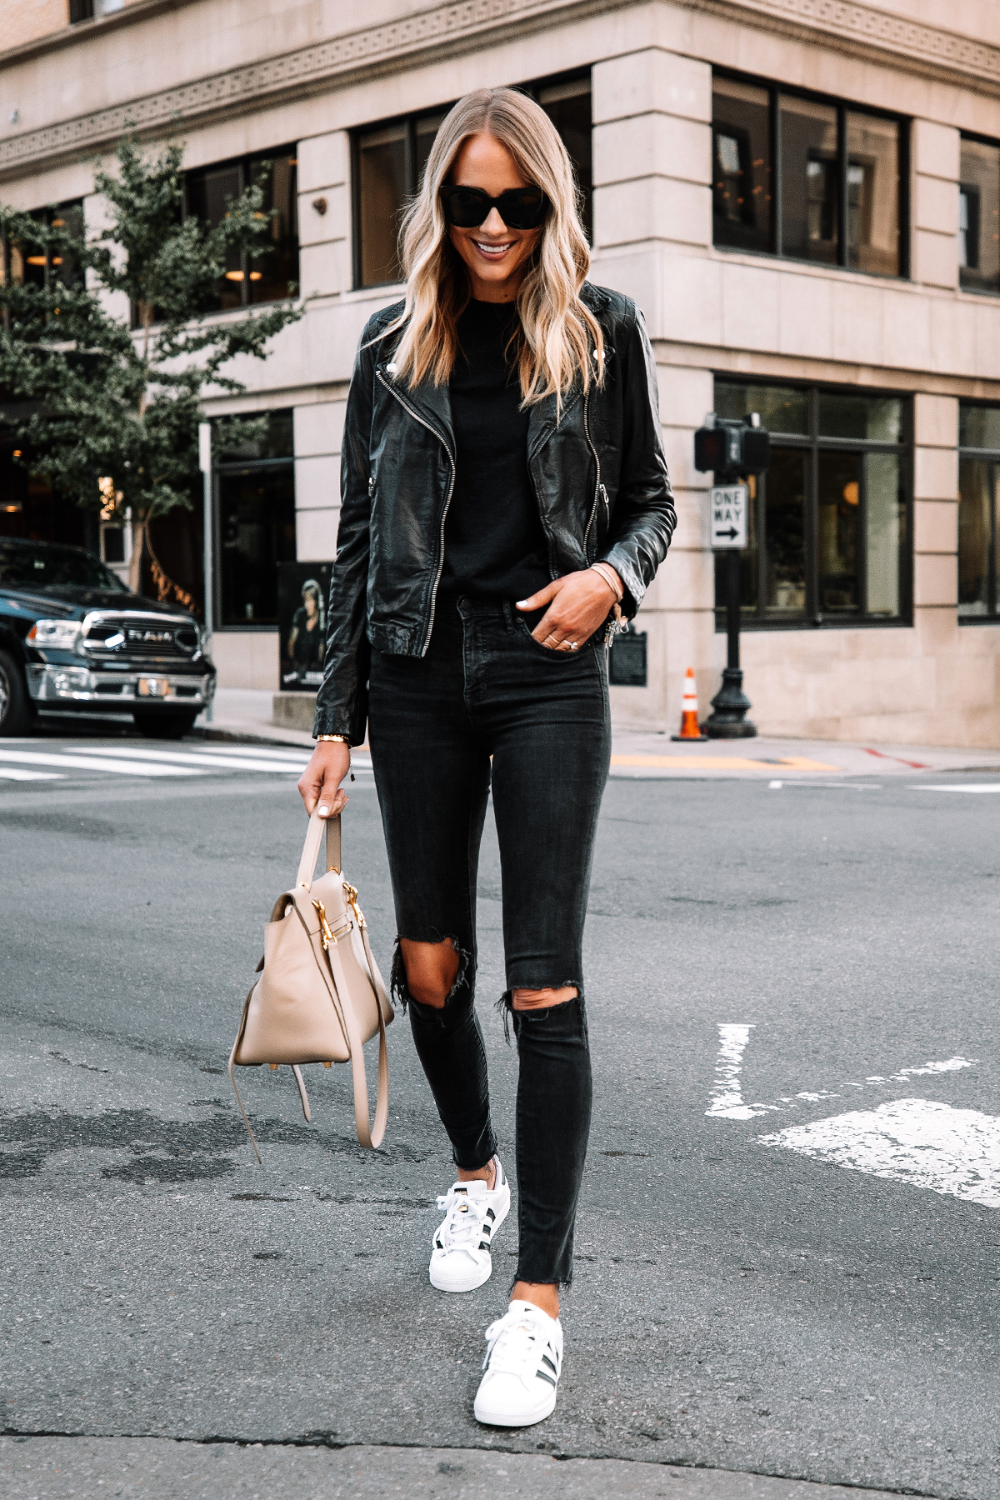 Fashion Jackson Wearing Madewell Black Leather Jacket Black Sweater Black Ripped Skinny Jeans Jacket Outfit Women Black Leather Jacket Outfit Superstar Outfit [ 1500 x 1000 Pixel ]